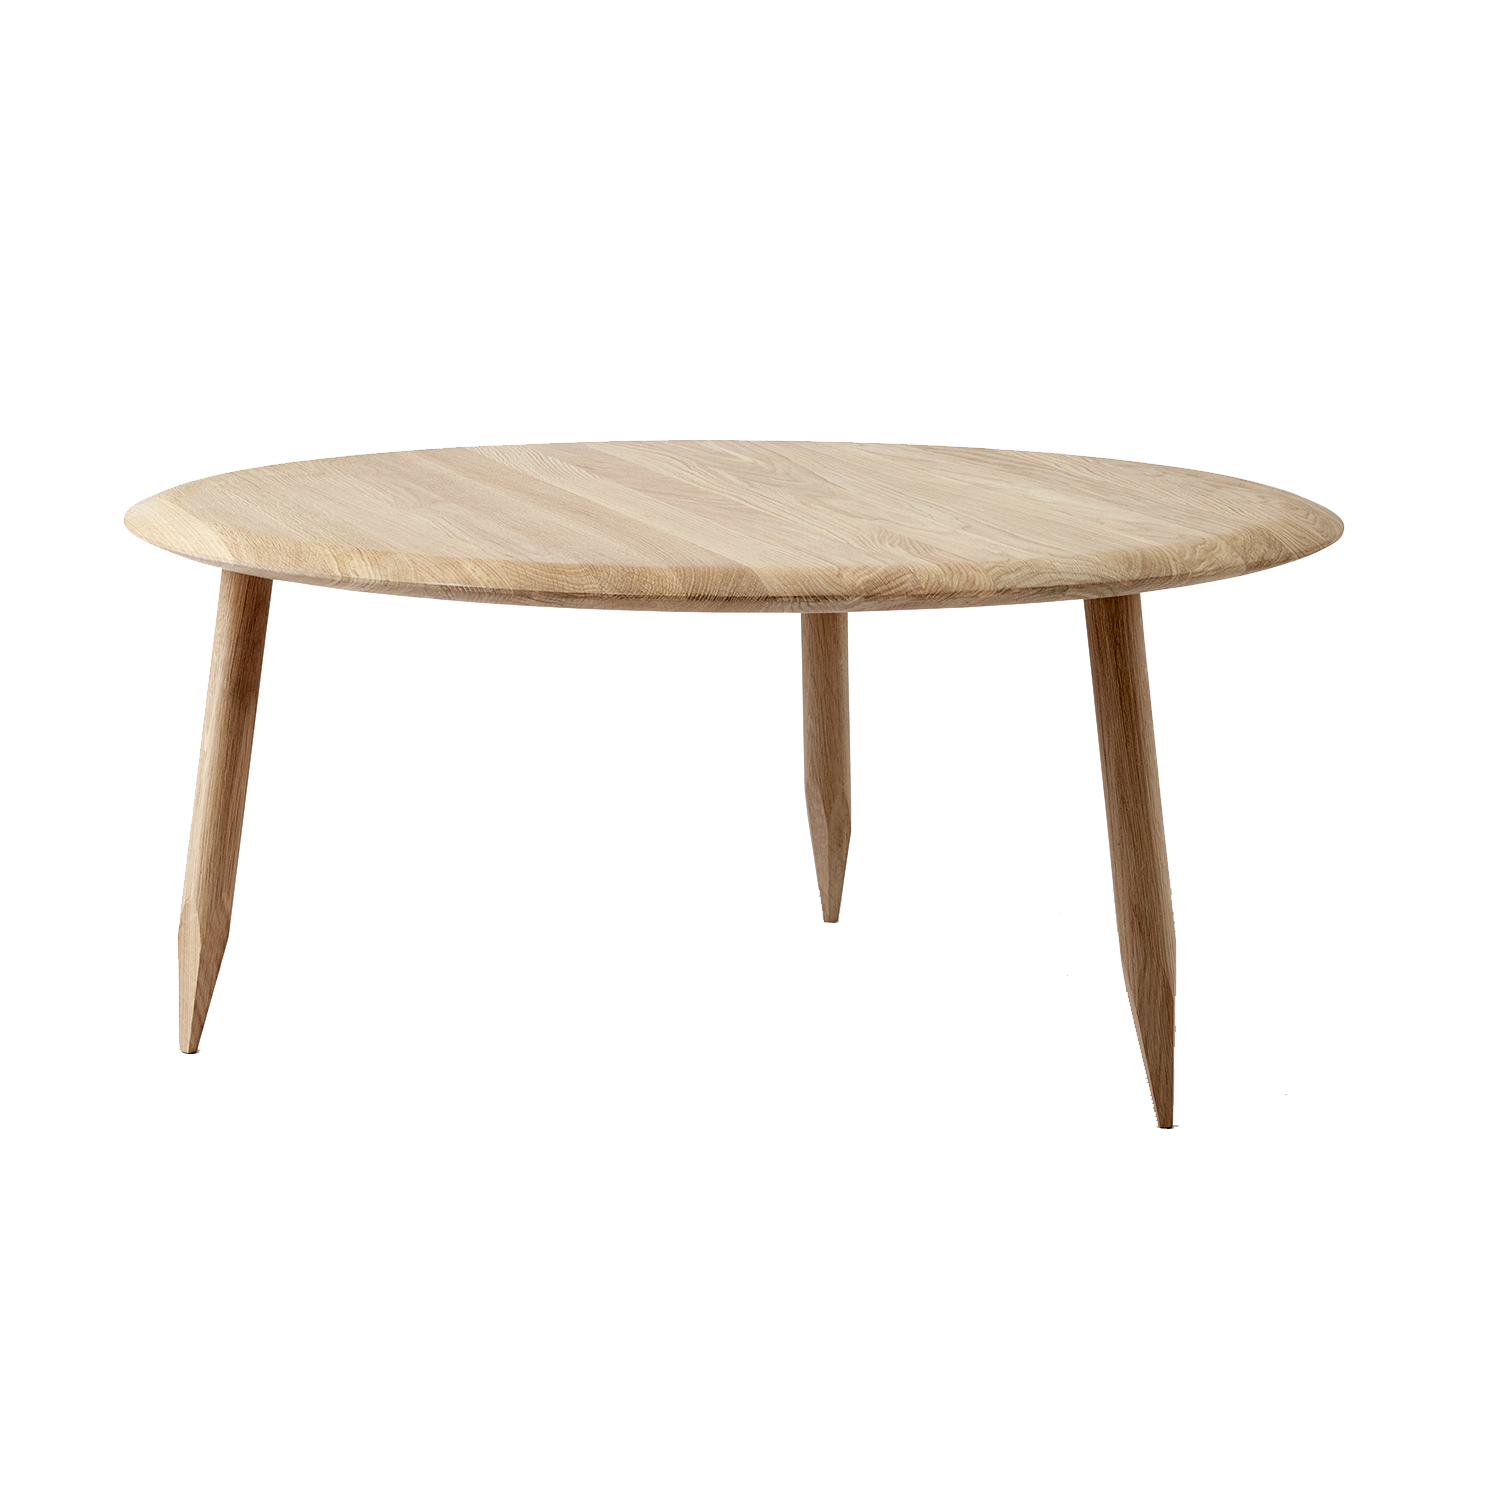 Bilde av &Tradition-Hoof Table Sw2, Hvitoljet Eik